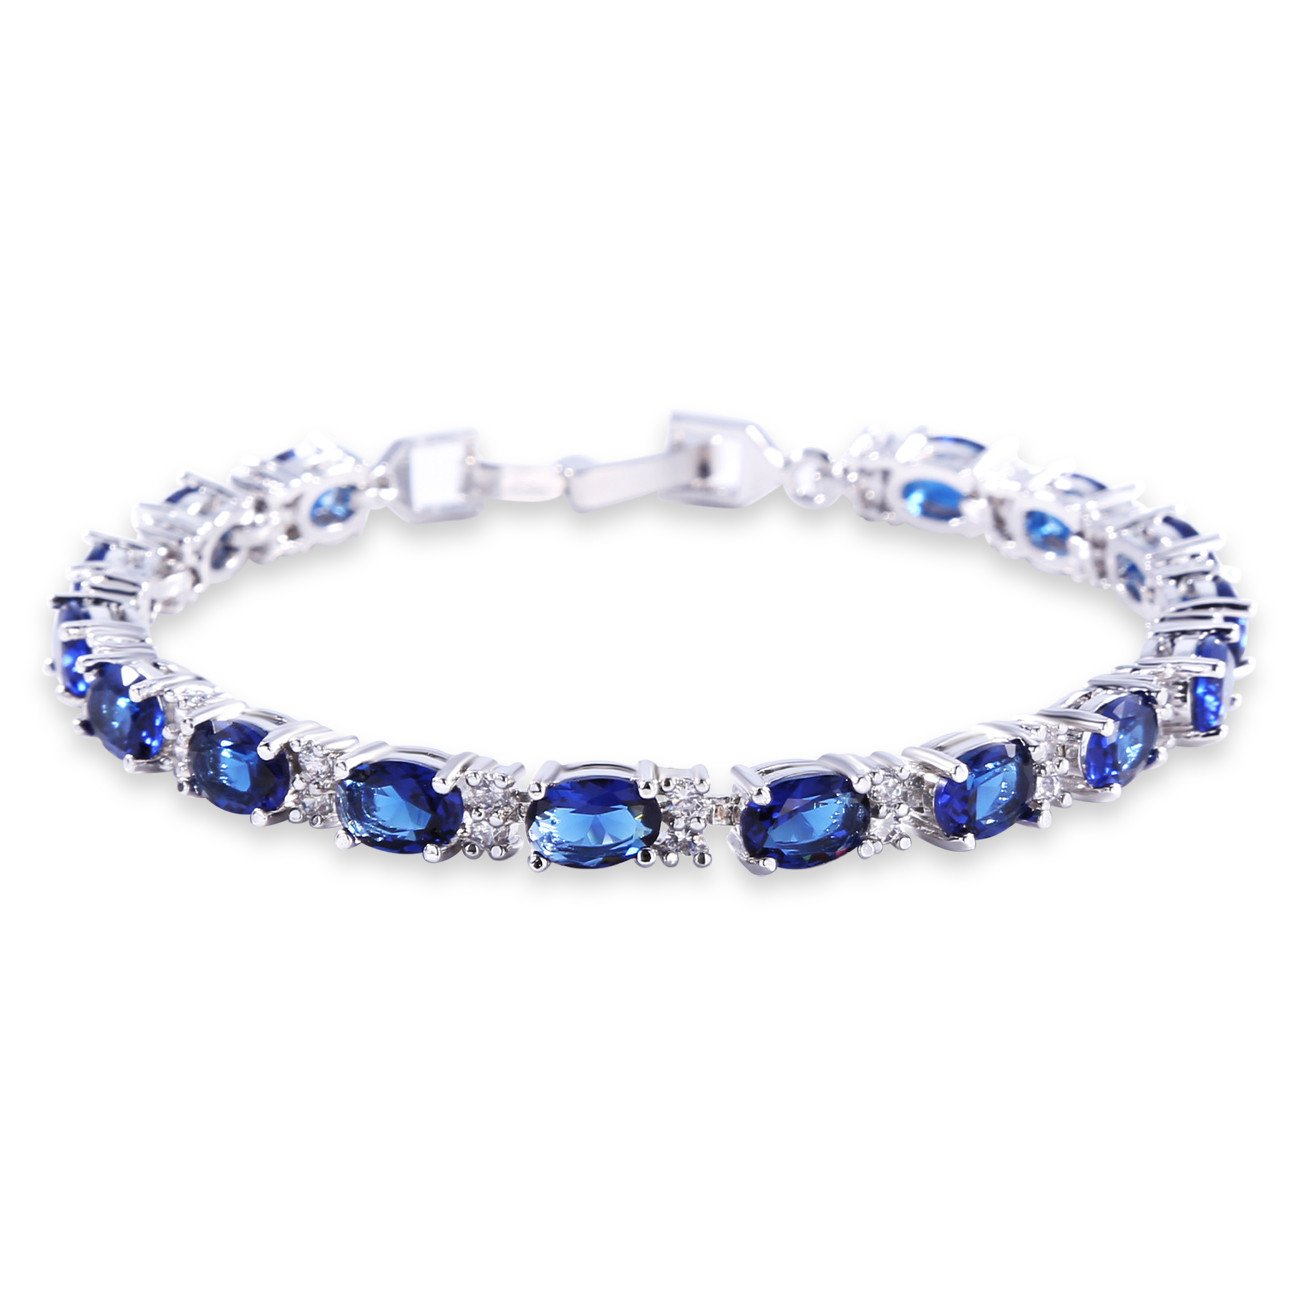 GULICX White Gold Electroplated Cubic Zirconia Blue Crystal Roman Tennis Bracelet Sapphire Color Link Chain